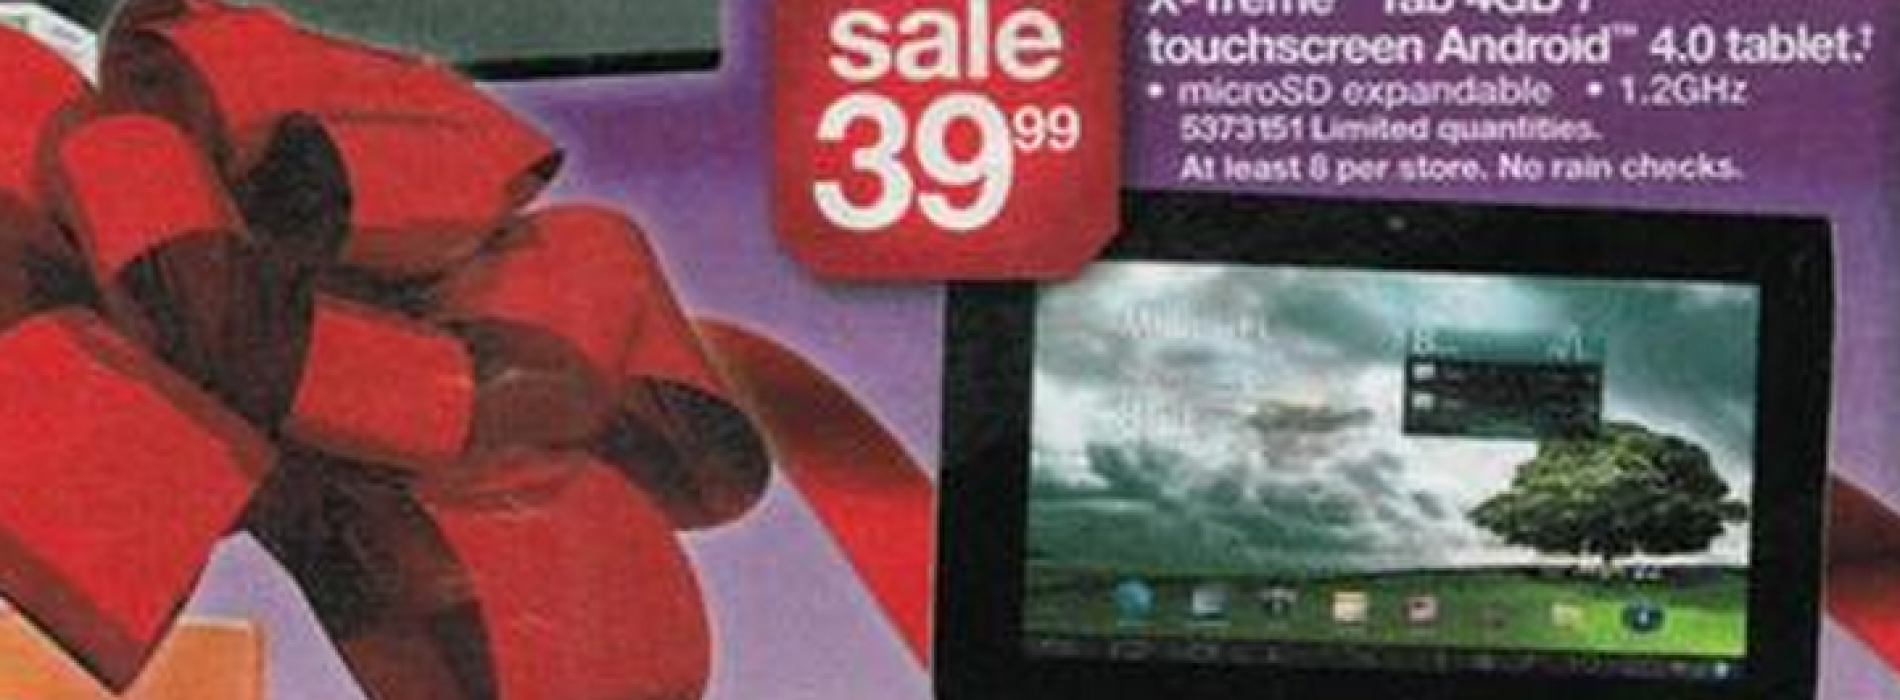 Kmart Black Friday ad a smattering of dirt-cheap, no-name Androids